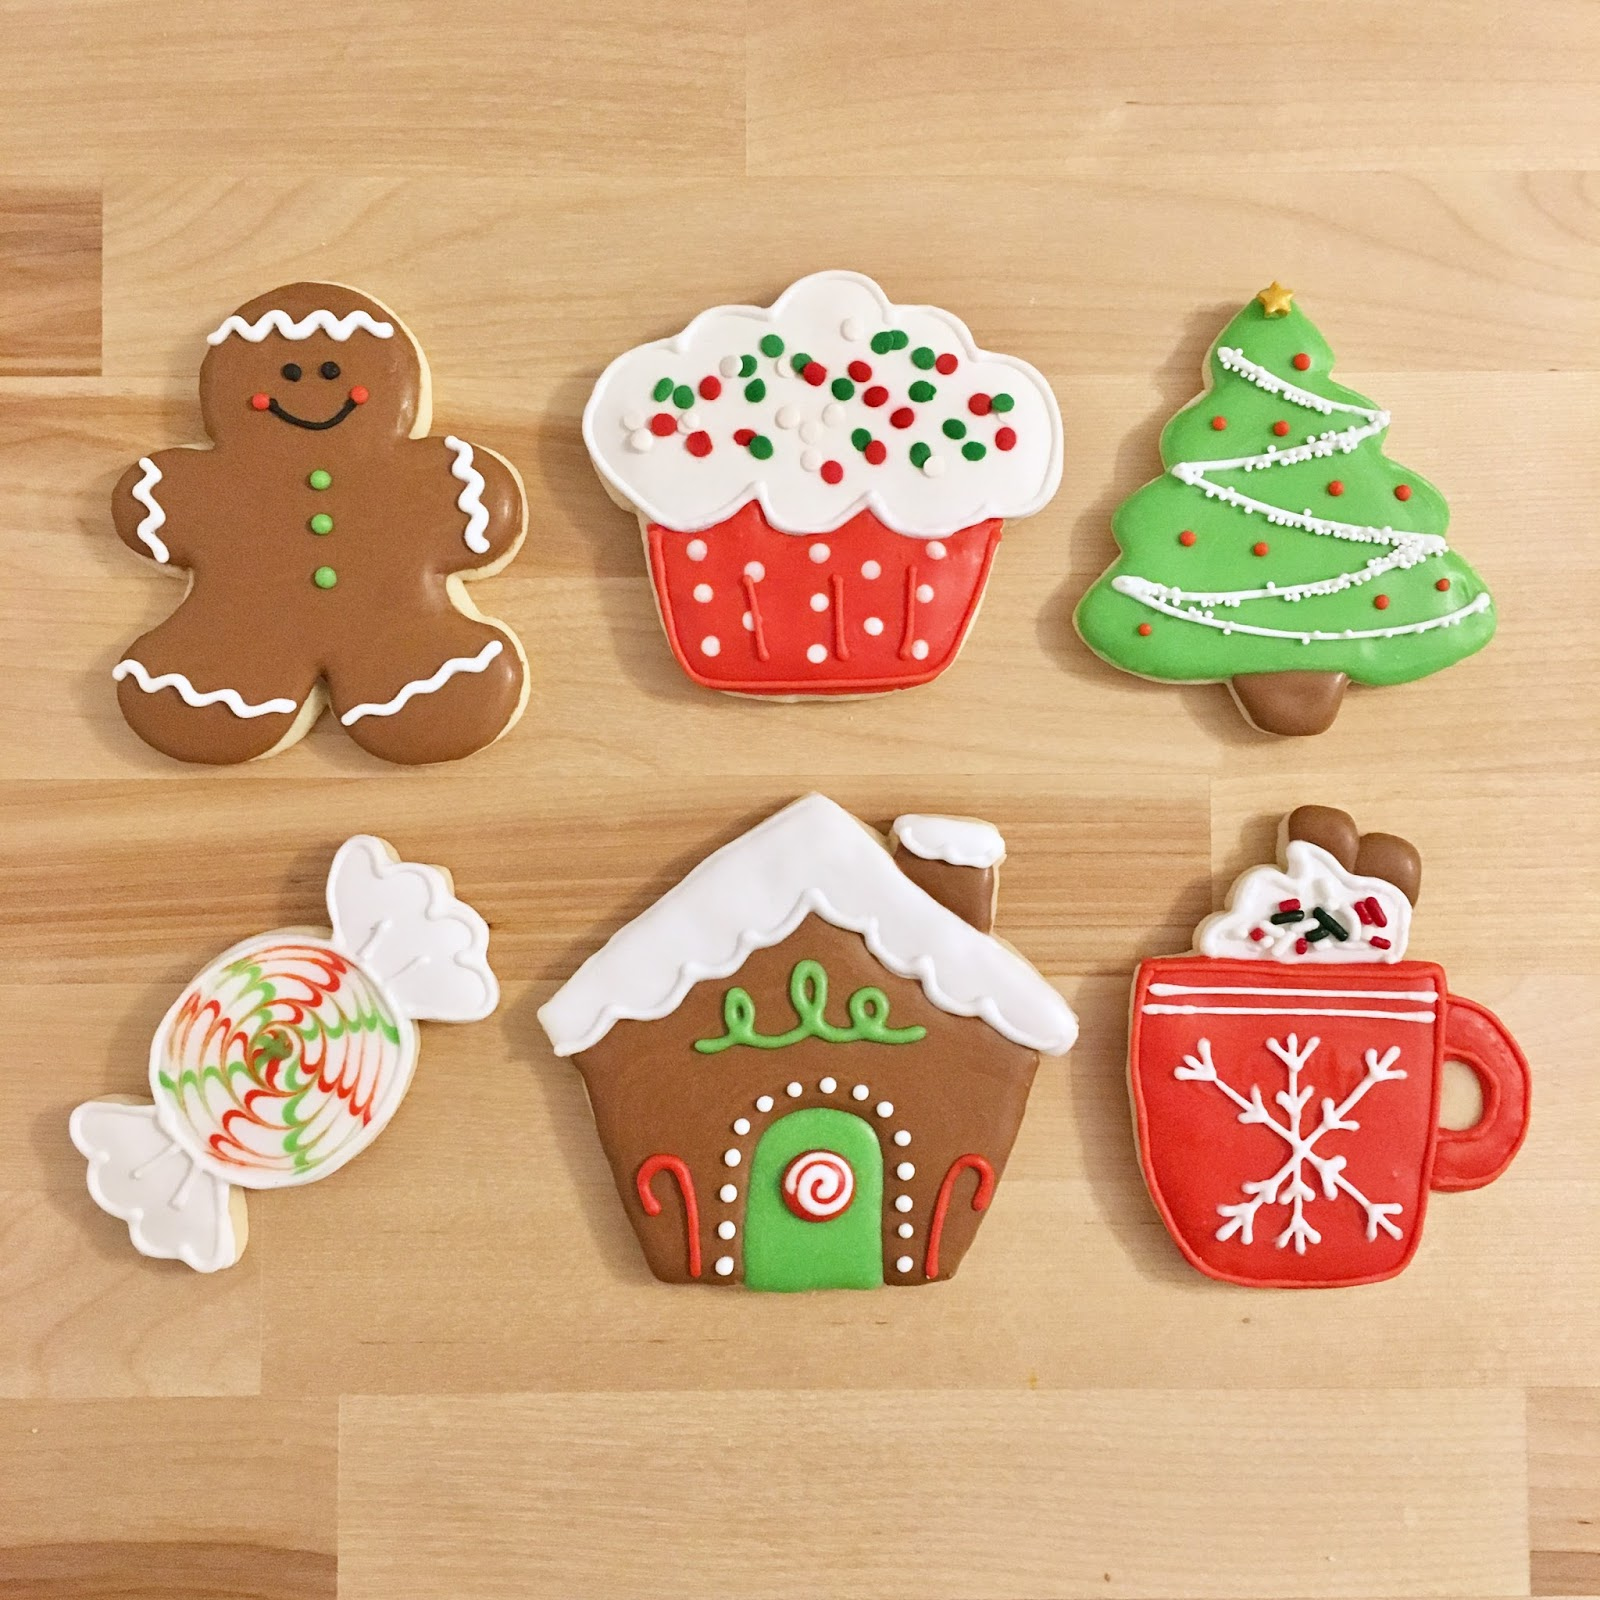 Sweet Scarlet Baking: Christmas Cookie Decorating Classes